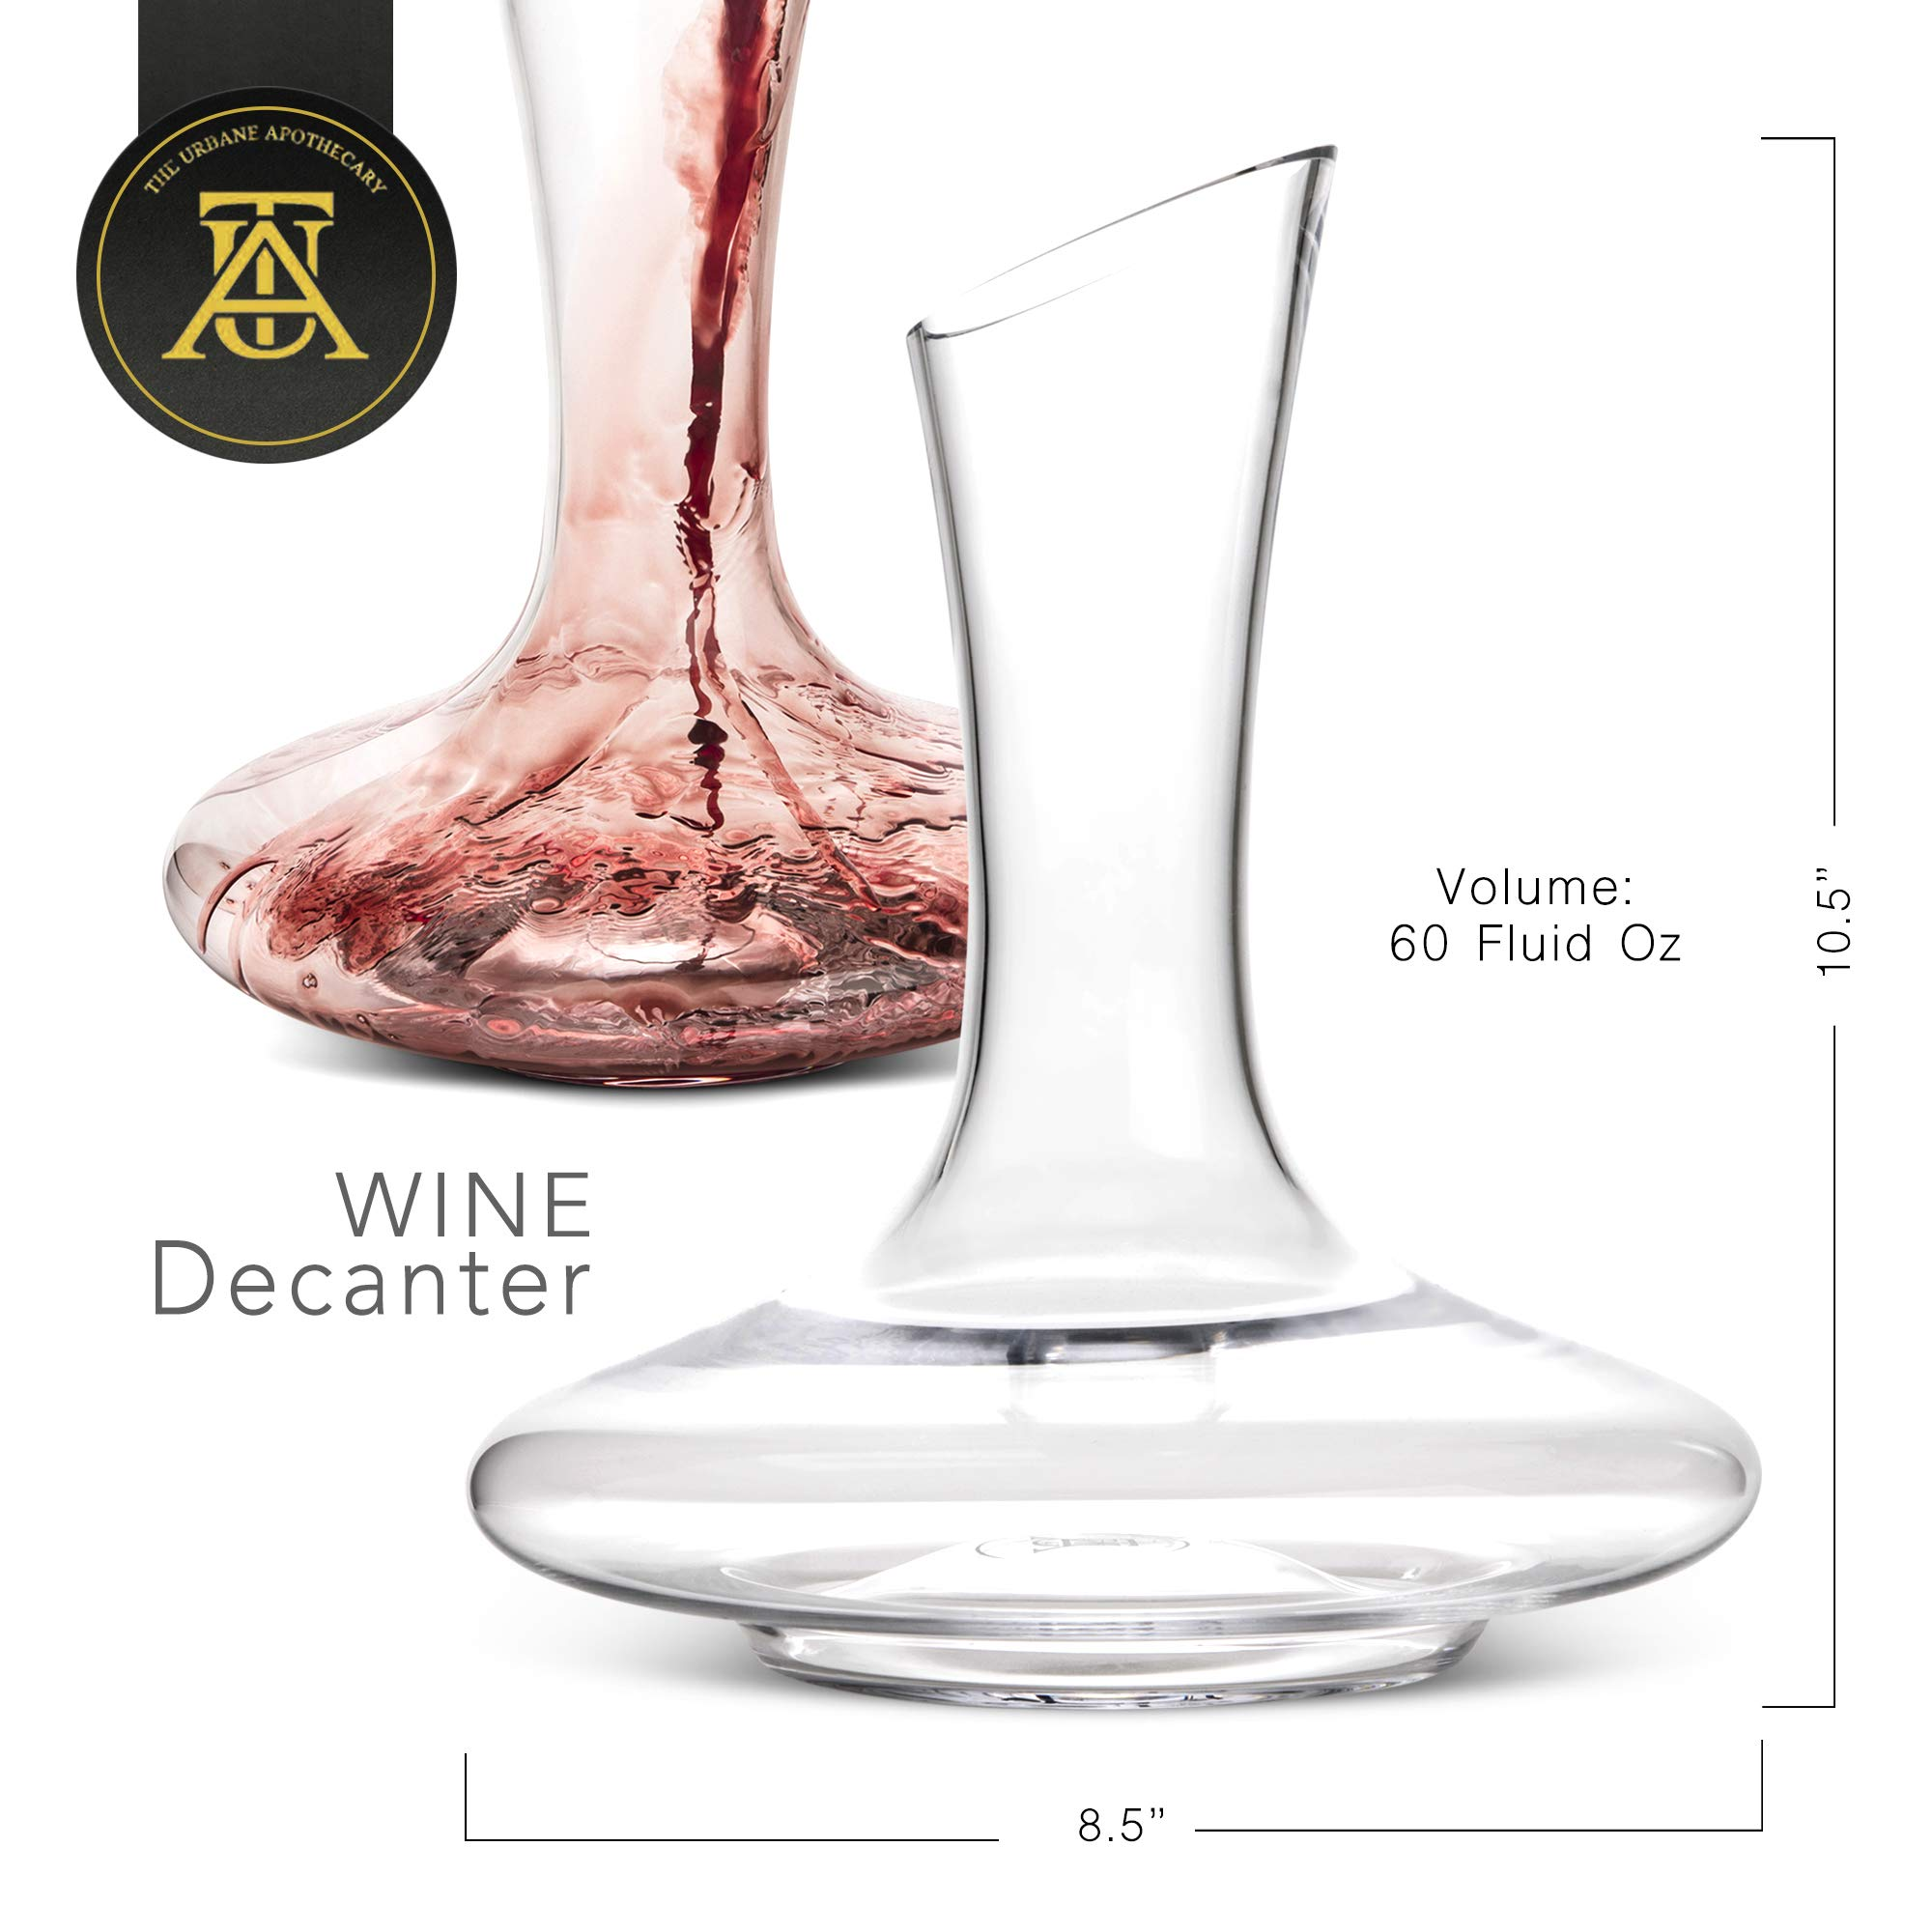 Beautiful, Crystal Wine Decanter Set, Hand Blown, 60 fluid oz - Wine Aerating Decanters with Elegant ​Black and Gold Velvet Sleeve​ - Drip-Free, Lead-Free, BPA-Free - Table Aerator Carafe by The Urbane Apothecary (Image #2)